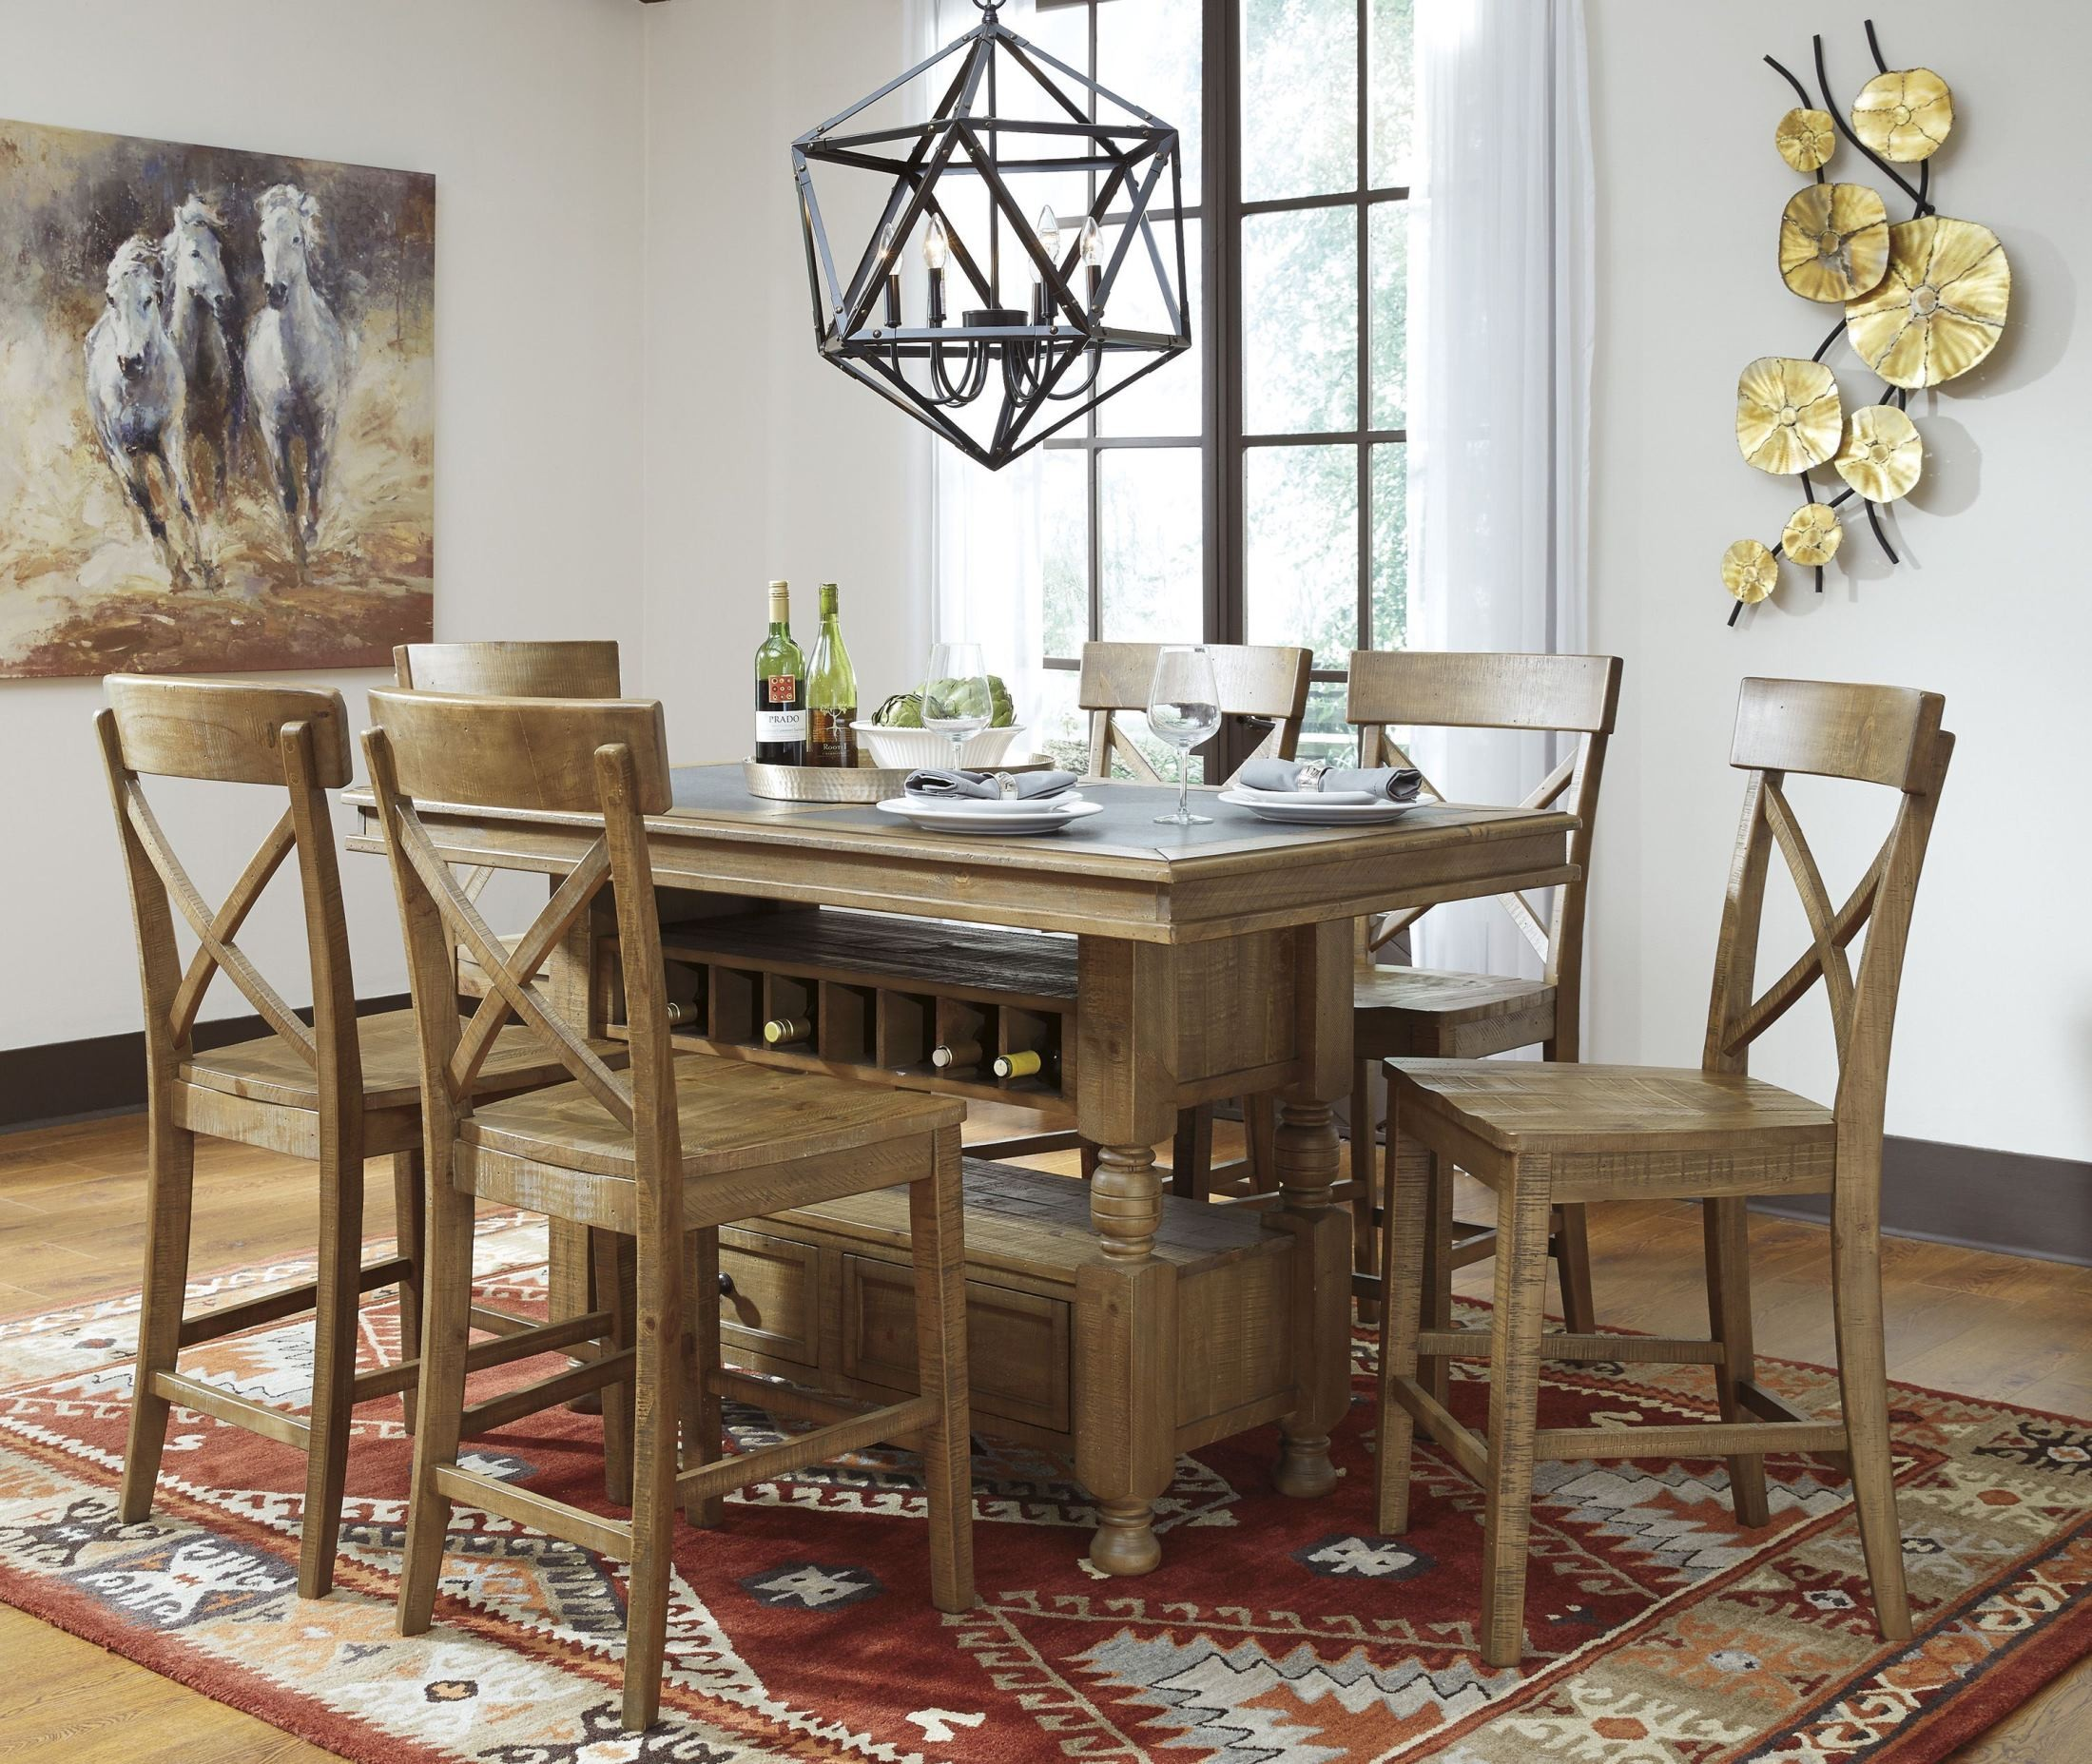 Trishley light brown rectangular storage counter height dining room set d659 32 ashley - Dining room sets with storage ...